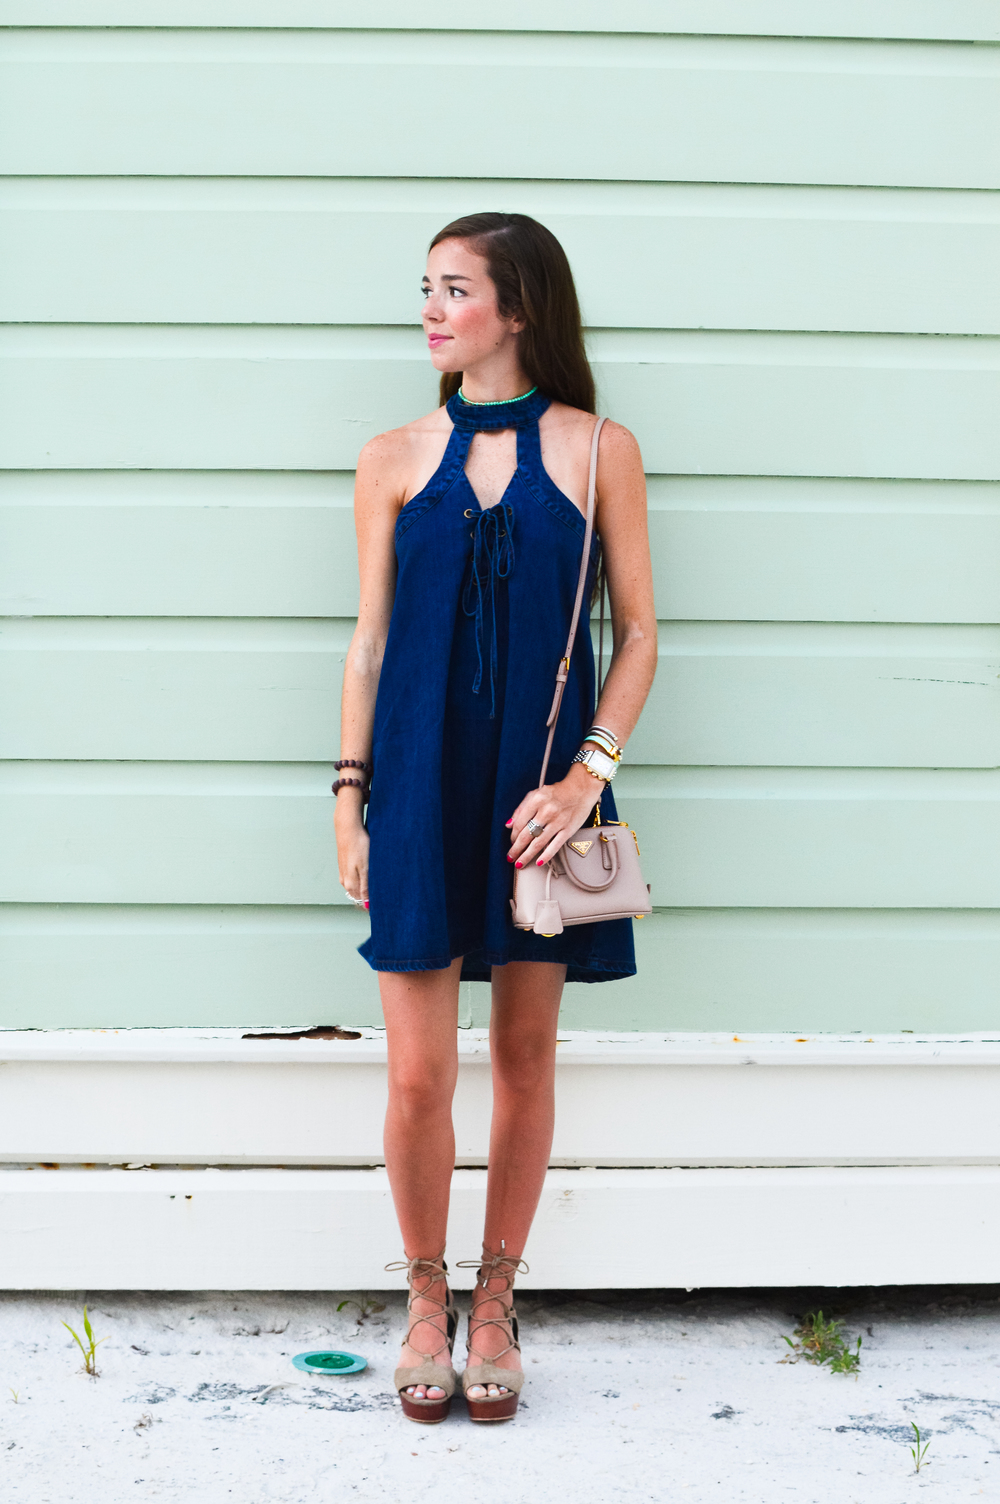 fashion blogger lcb style blue dress (9 of 14).jpg